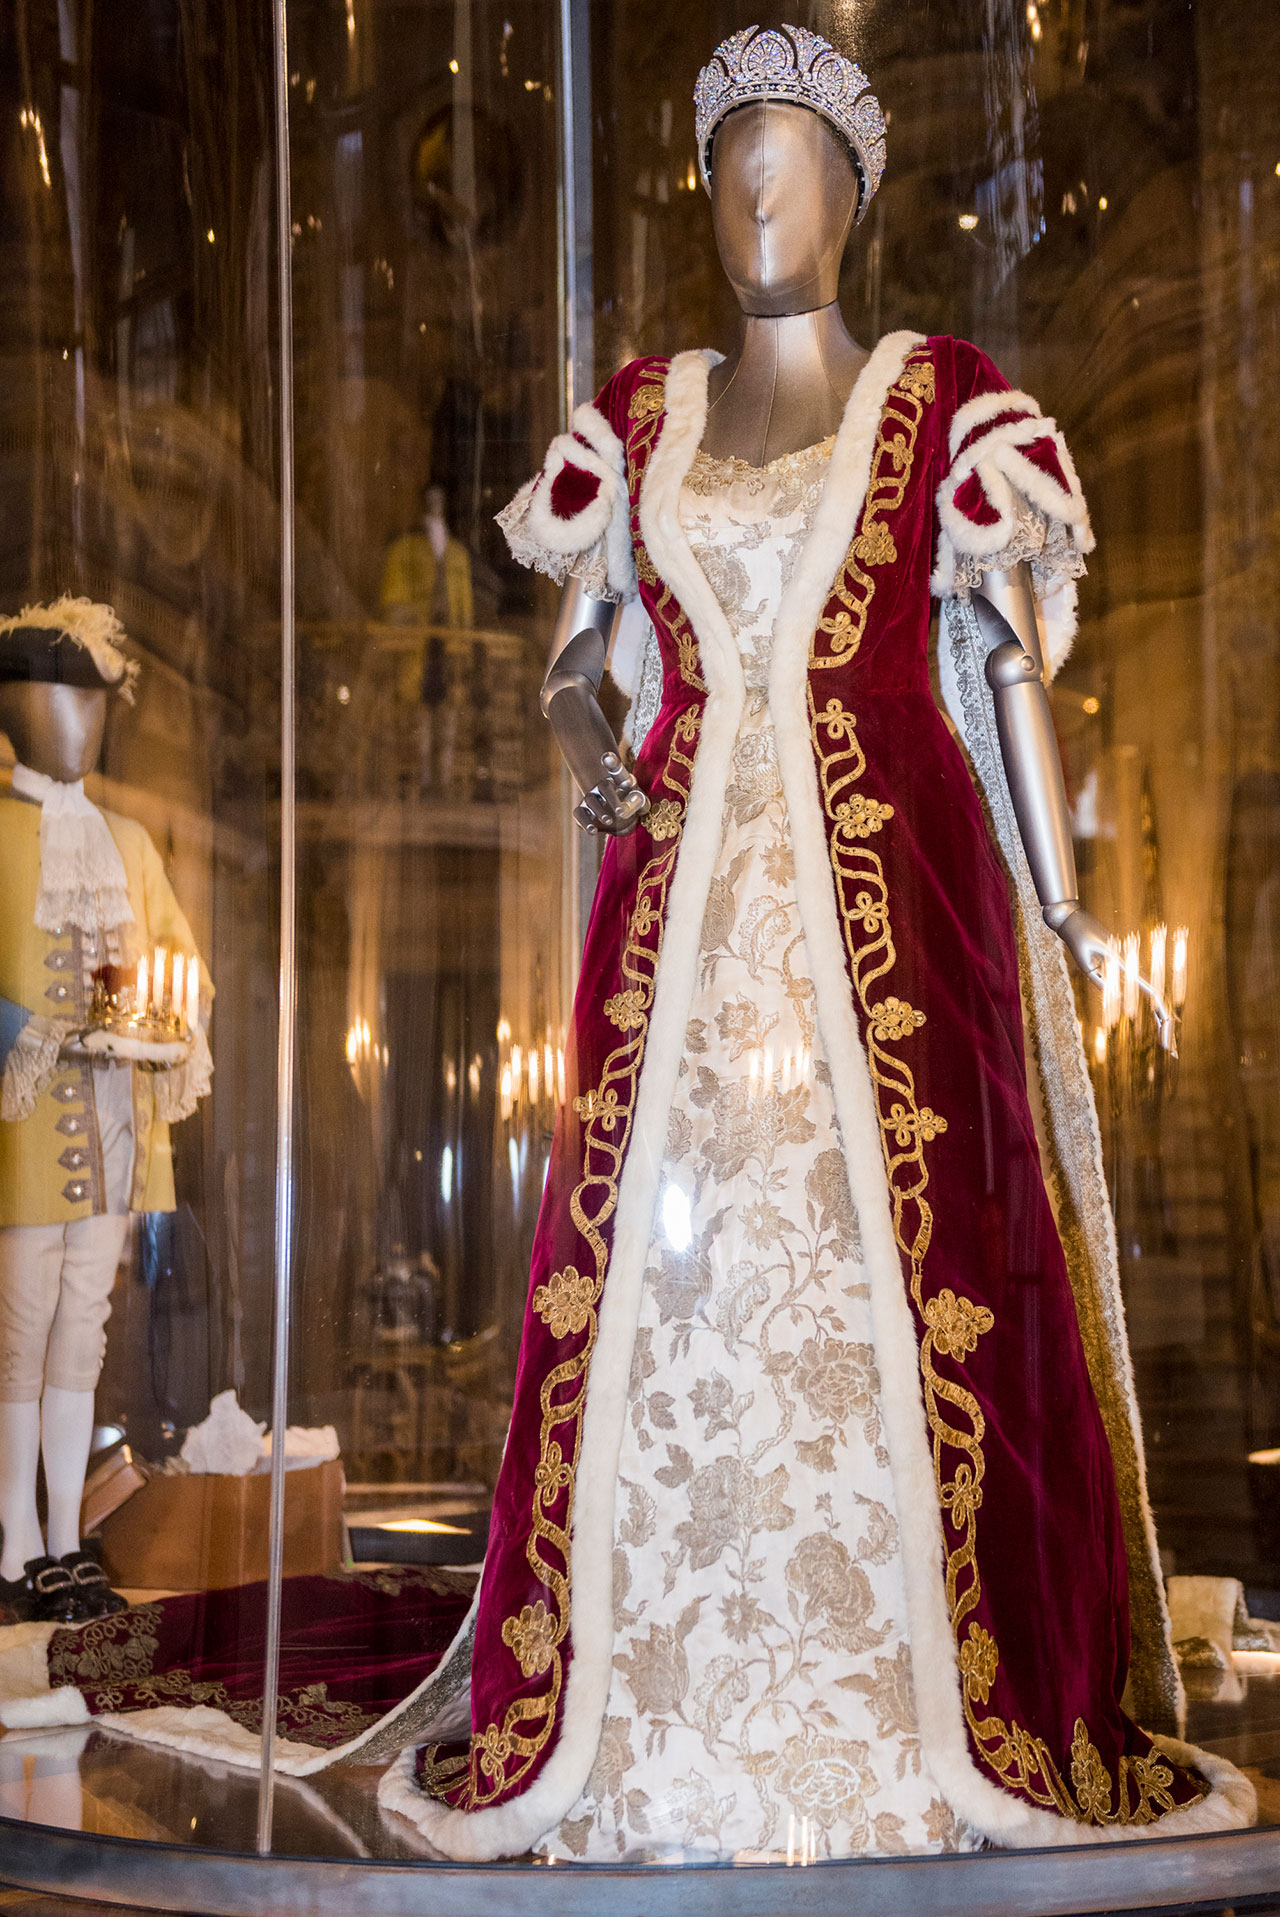 Coronation Robe in the Painted Hall at Chatsworth House Style. Photo courtesy Chatsworth House Trust.